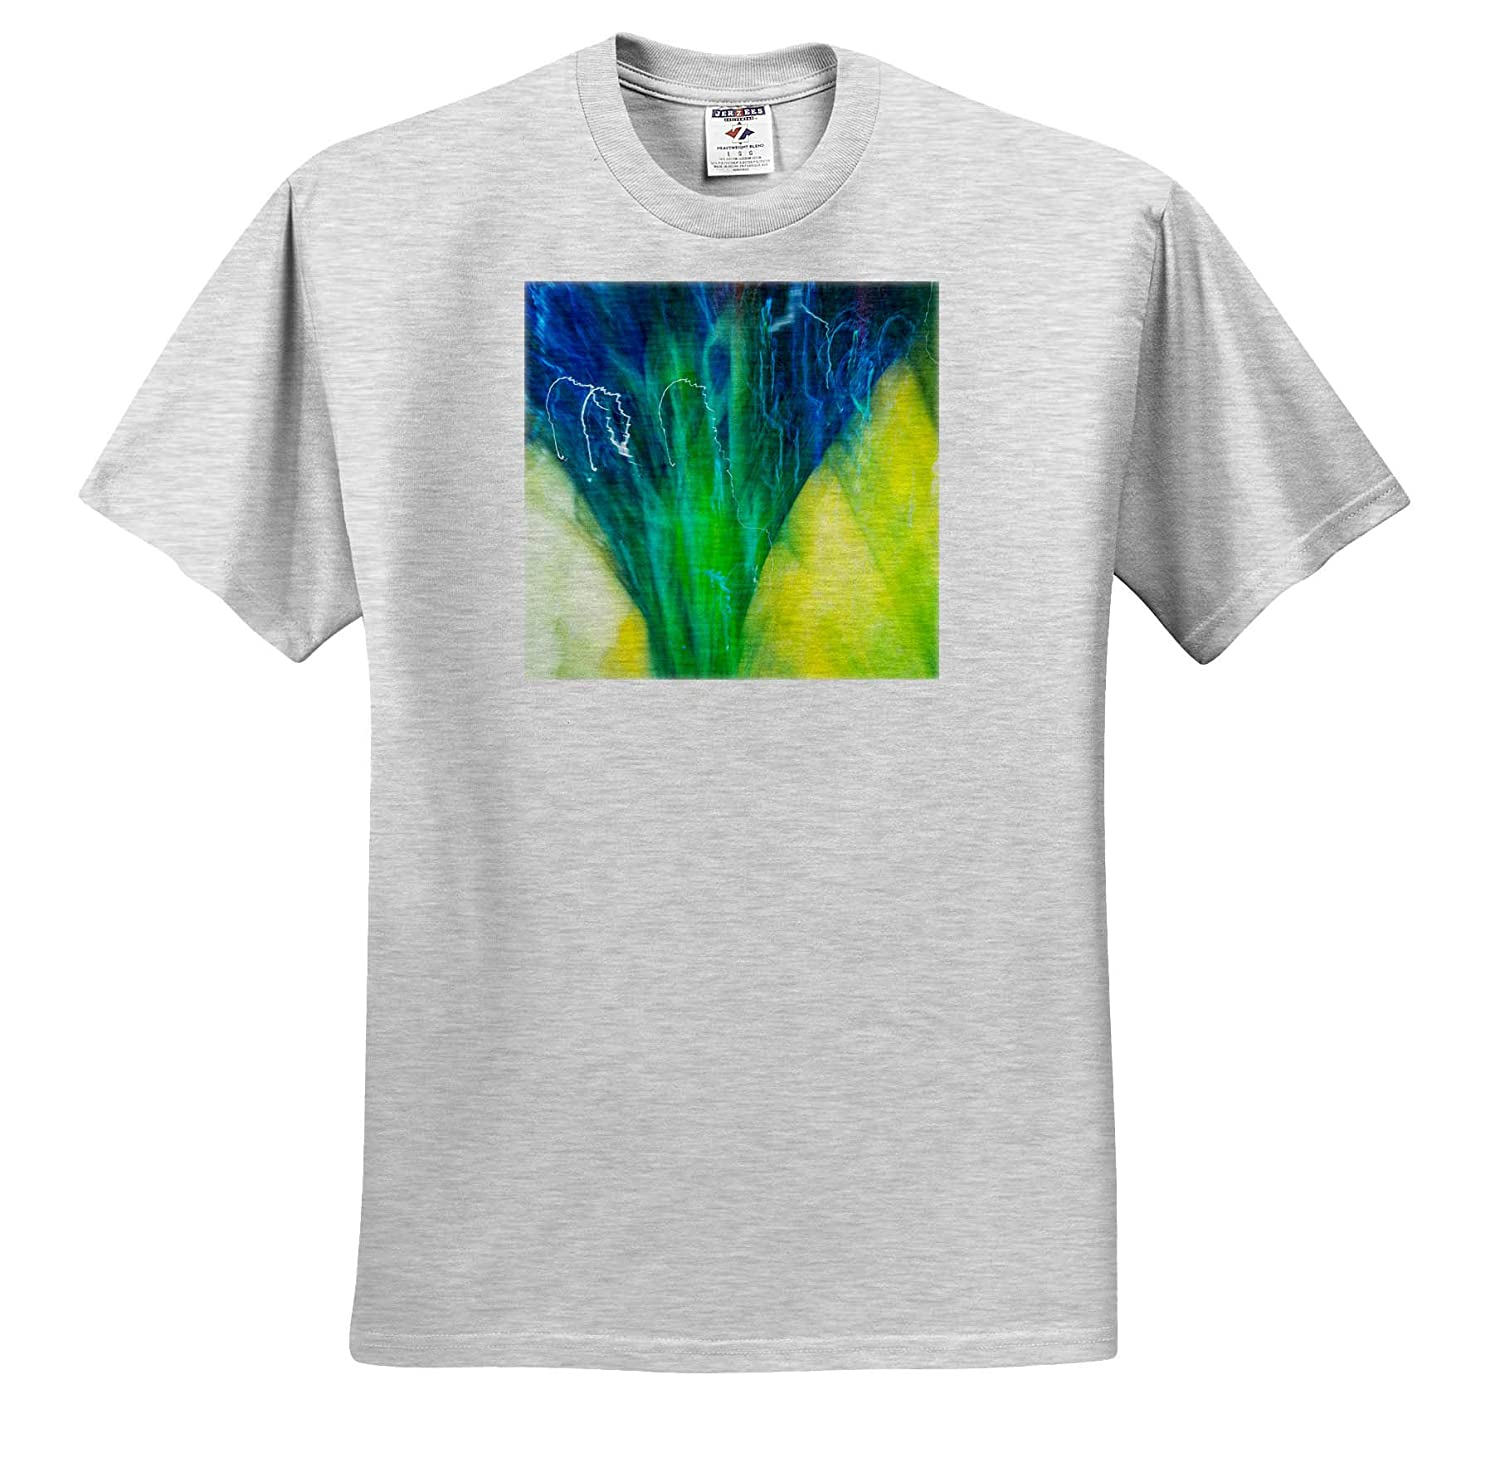 Adult T-Shirt XL Abstracts Colorful Glass with Motion Blur Effect ts/_315185 3dRose Danita Delimont